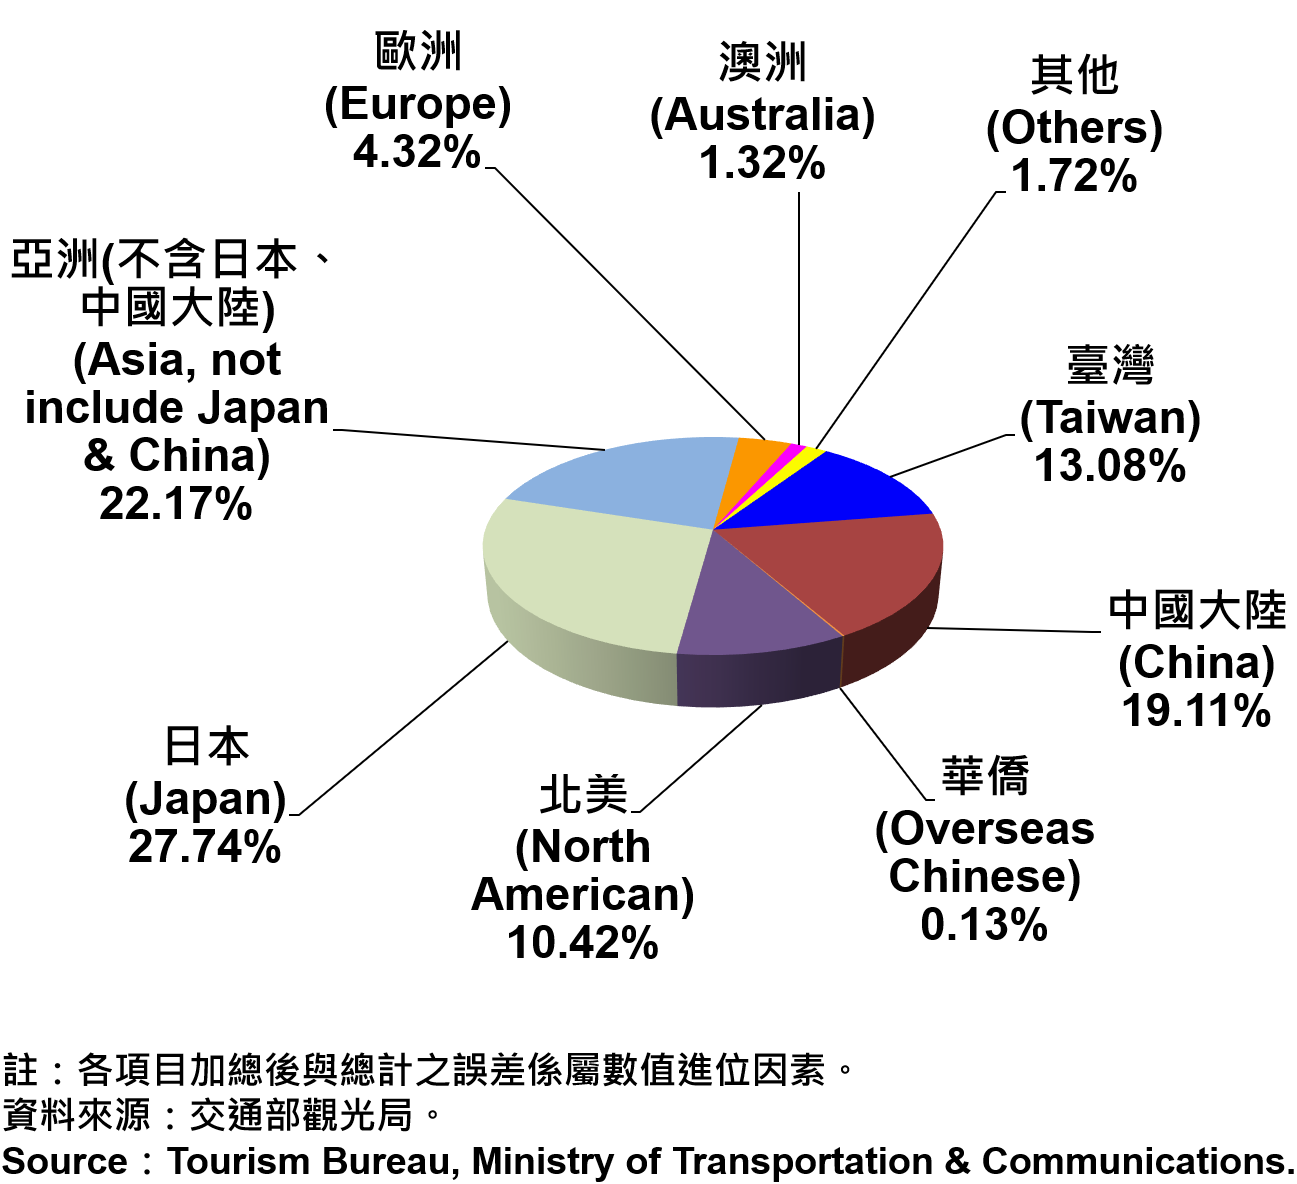 臺北市觀光旅館住客類別統計—2019Q2 Nationalities of Tourist Hotel Residents in Taipei City—2019Q2